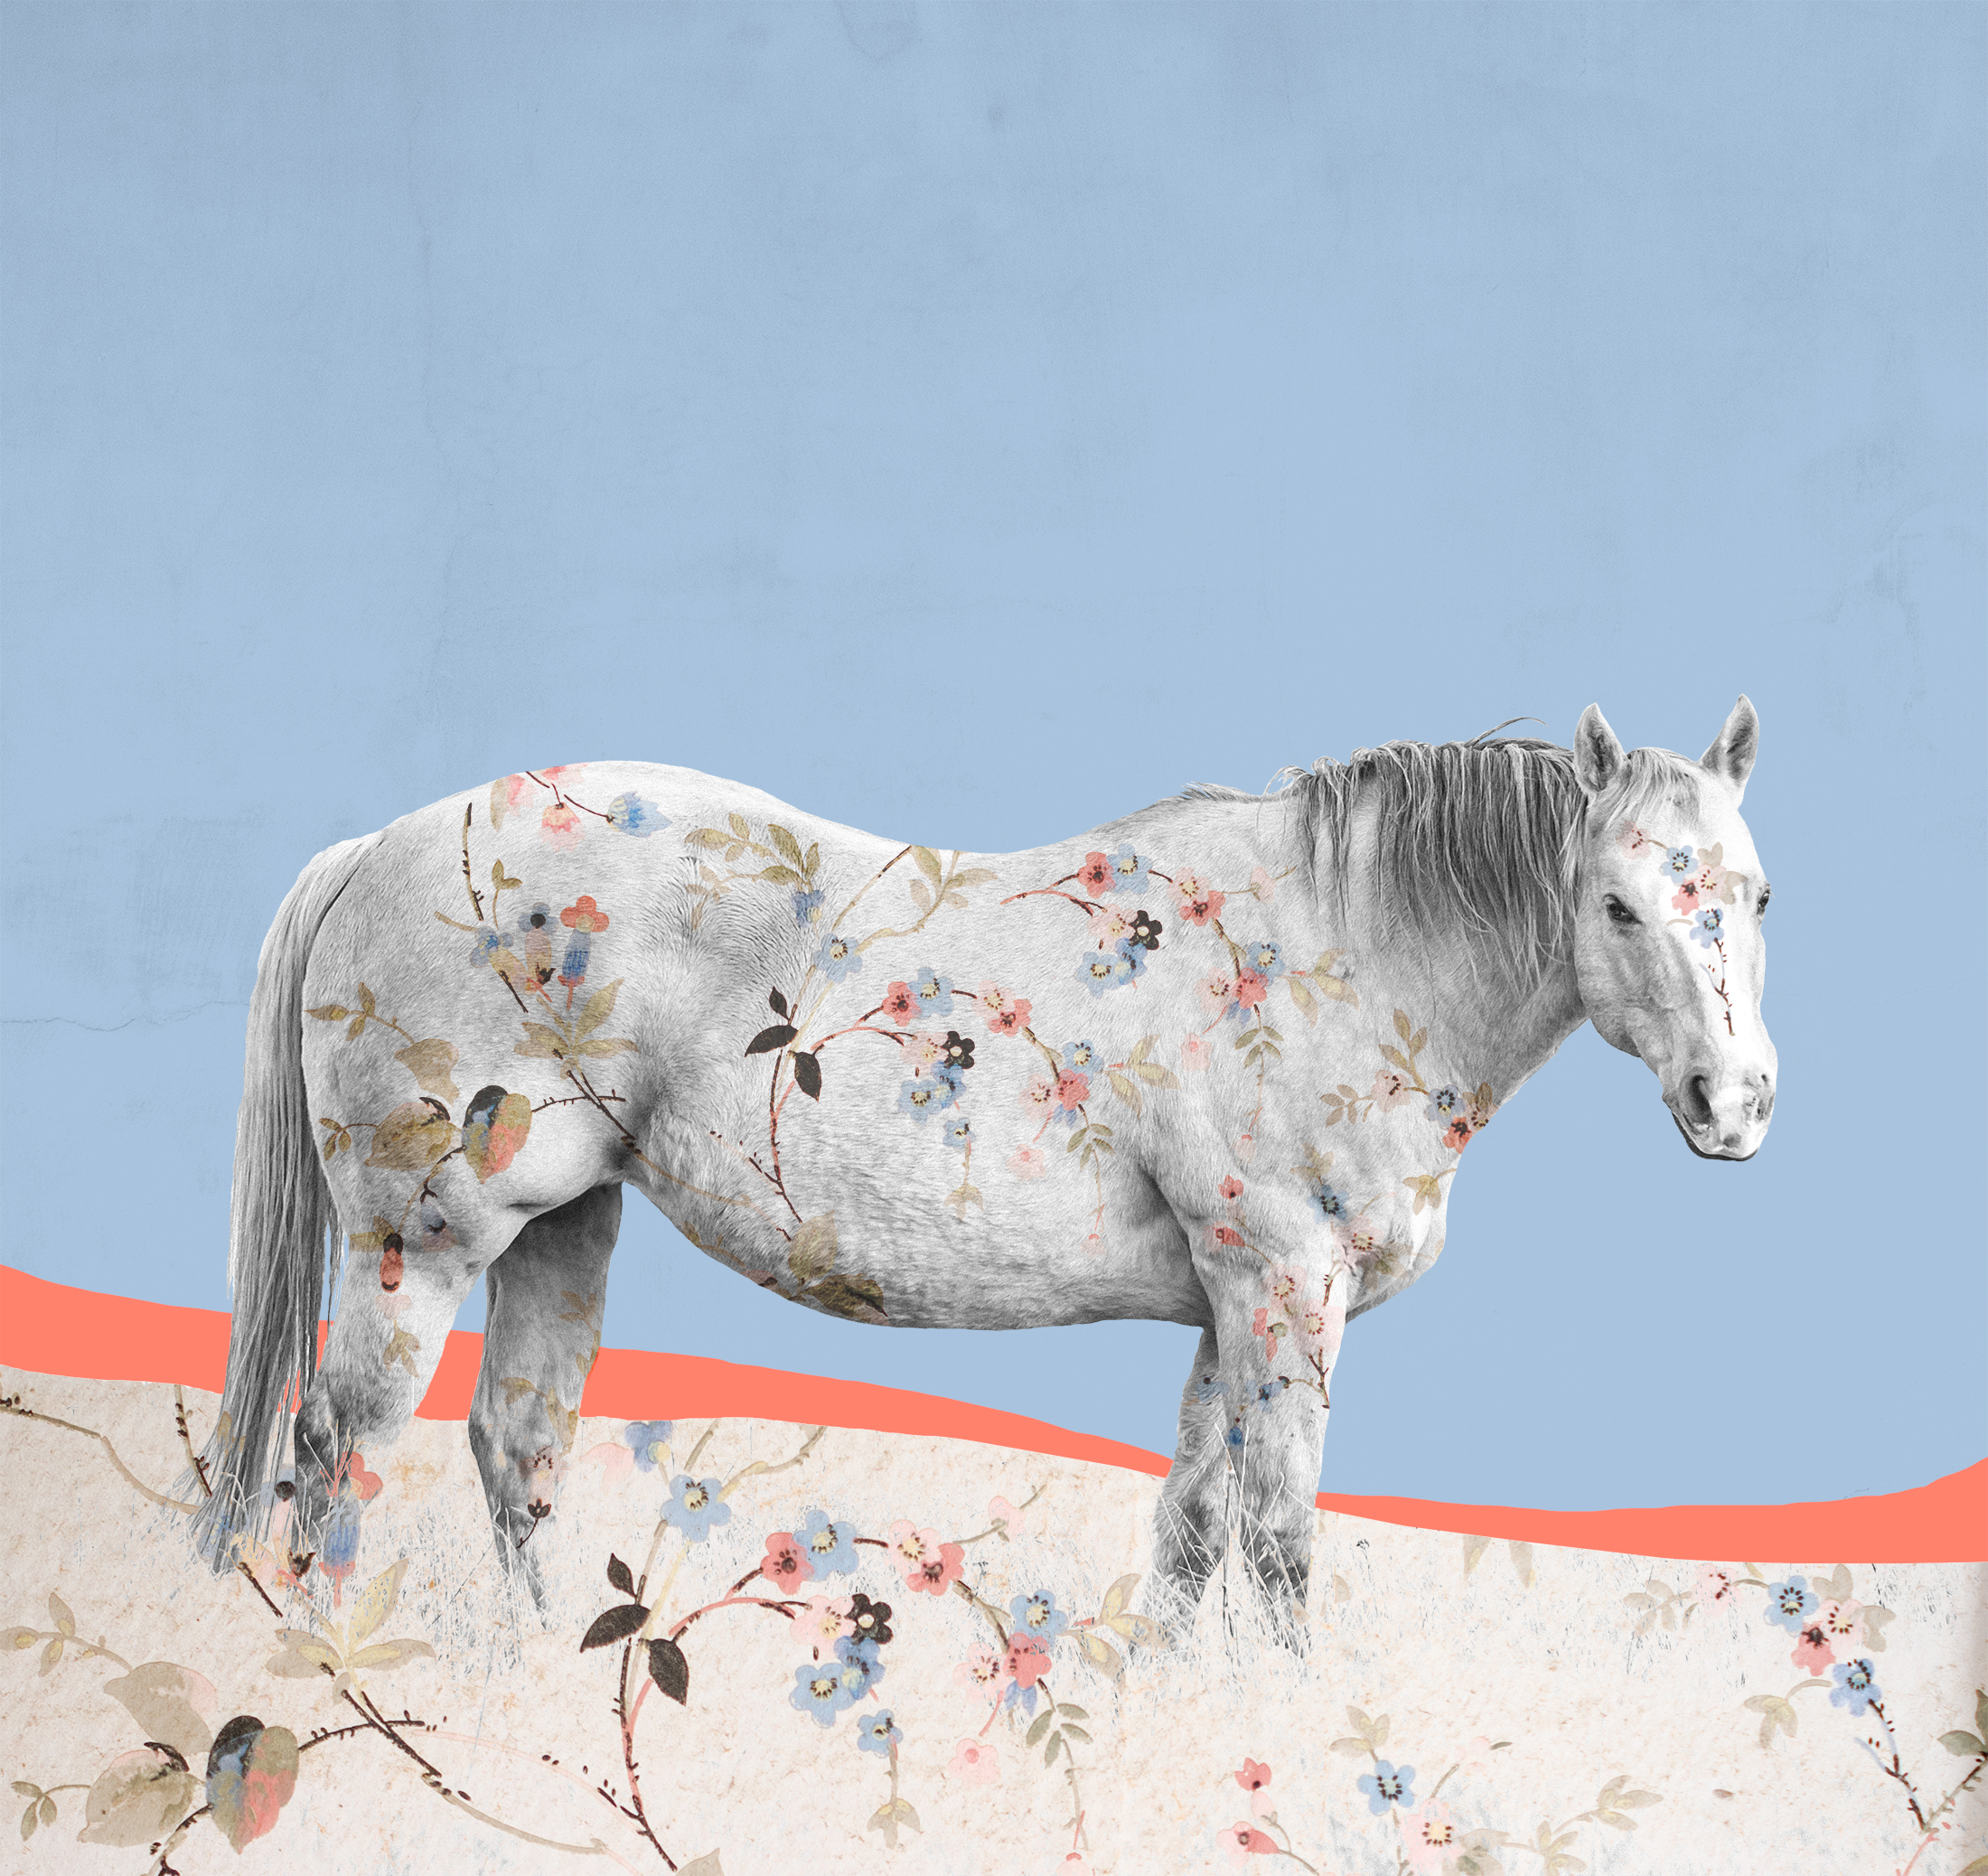 { Horse No. 22  } Pictured is a ranch horse from a ranch outside Yellowstone National Park. The pattern is a photograph I made of vintage wallpaper in an abandoned home in the ghost town of Bannack, Montana. The Roe/Graves House was built in 1866 and in addition to living there, William Roe operated a general store and meat market from the home. Roe was one of the Vigilantes who captured and hung the crooked Sheriff Henry Plummer and members of his secret gang, known as Road Agents, in 1864. The solid colored background is the painted walls of the abandoned Hotel Meade, also in Bannack, which was founded in 1862 after gold was discovered there.